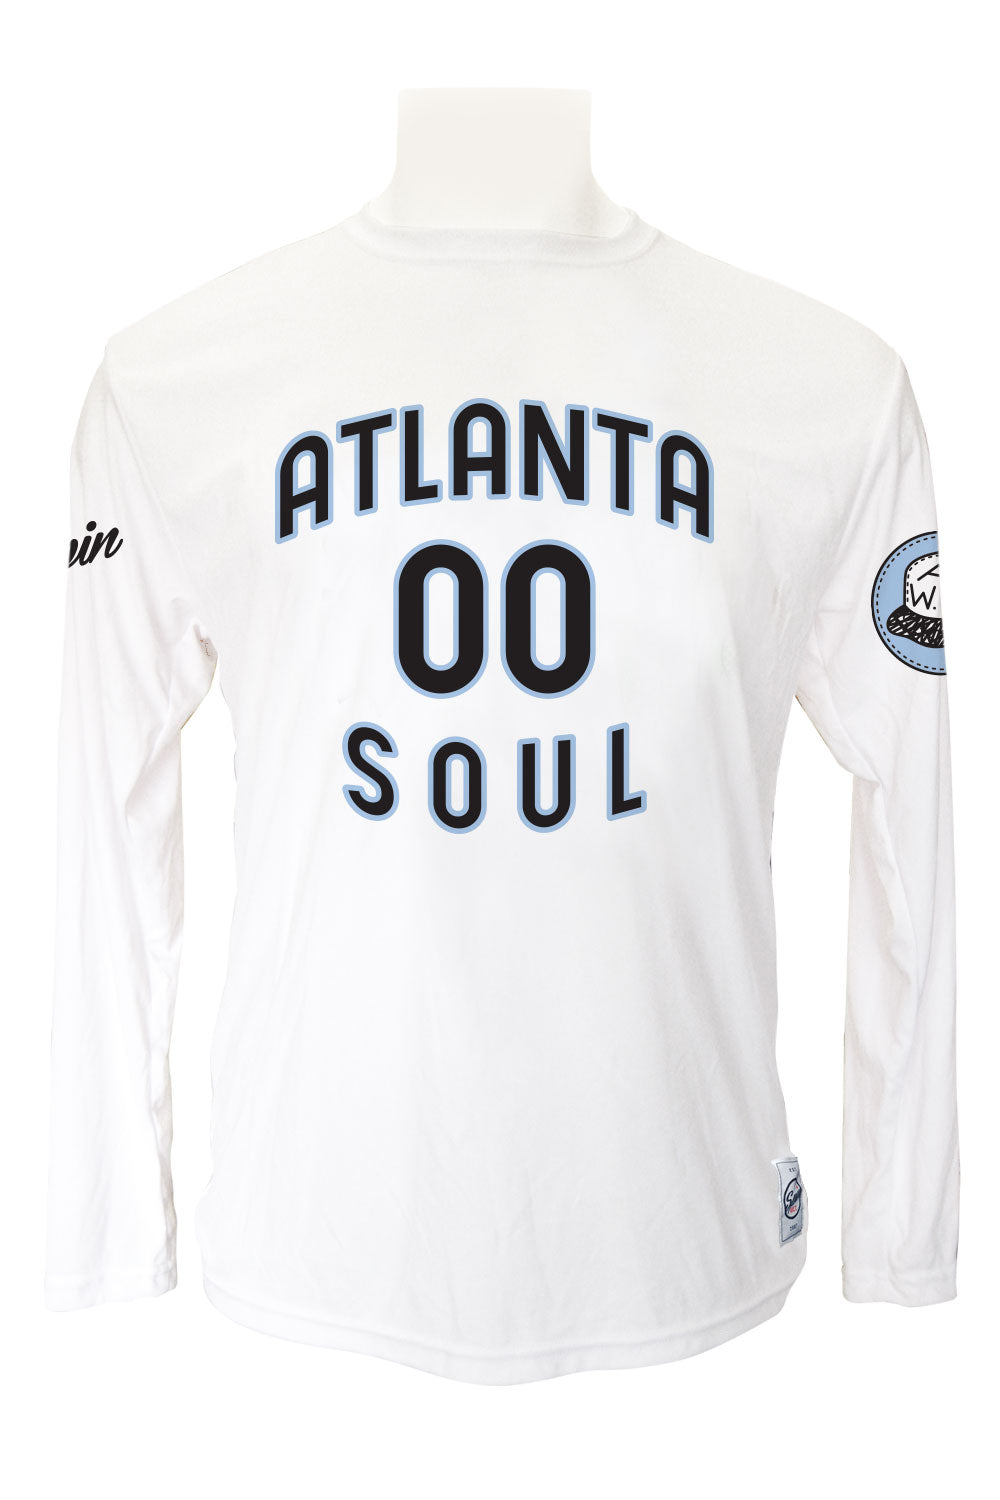 Atlanta Soul Long Sleeve Jersey (White)